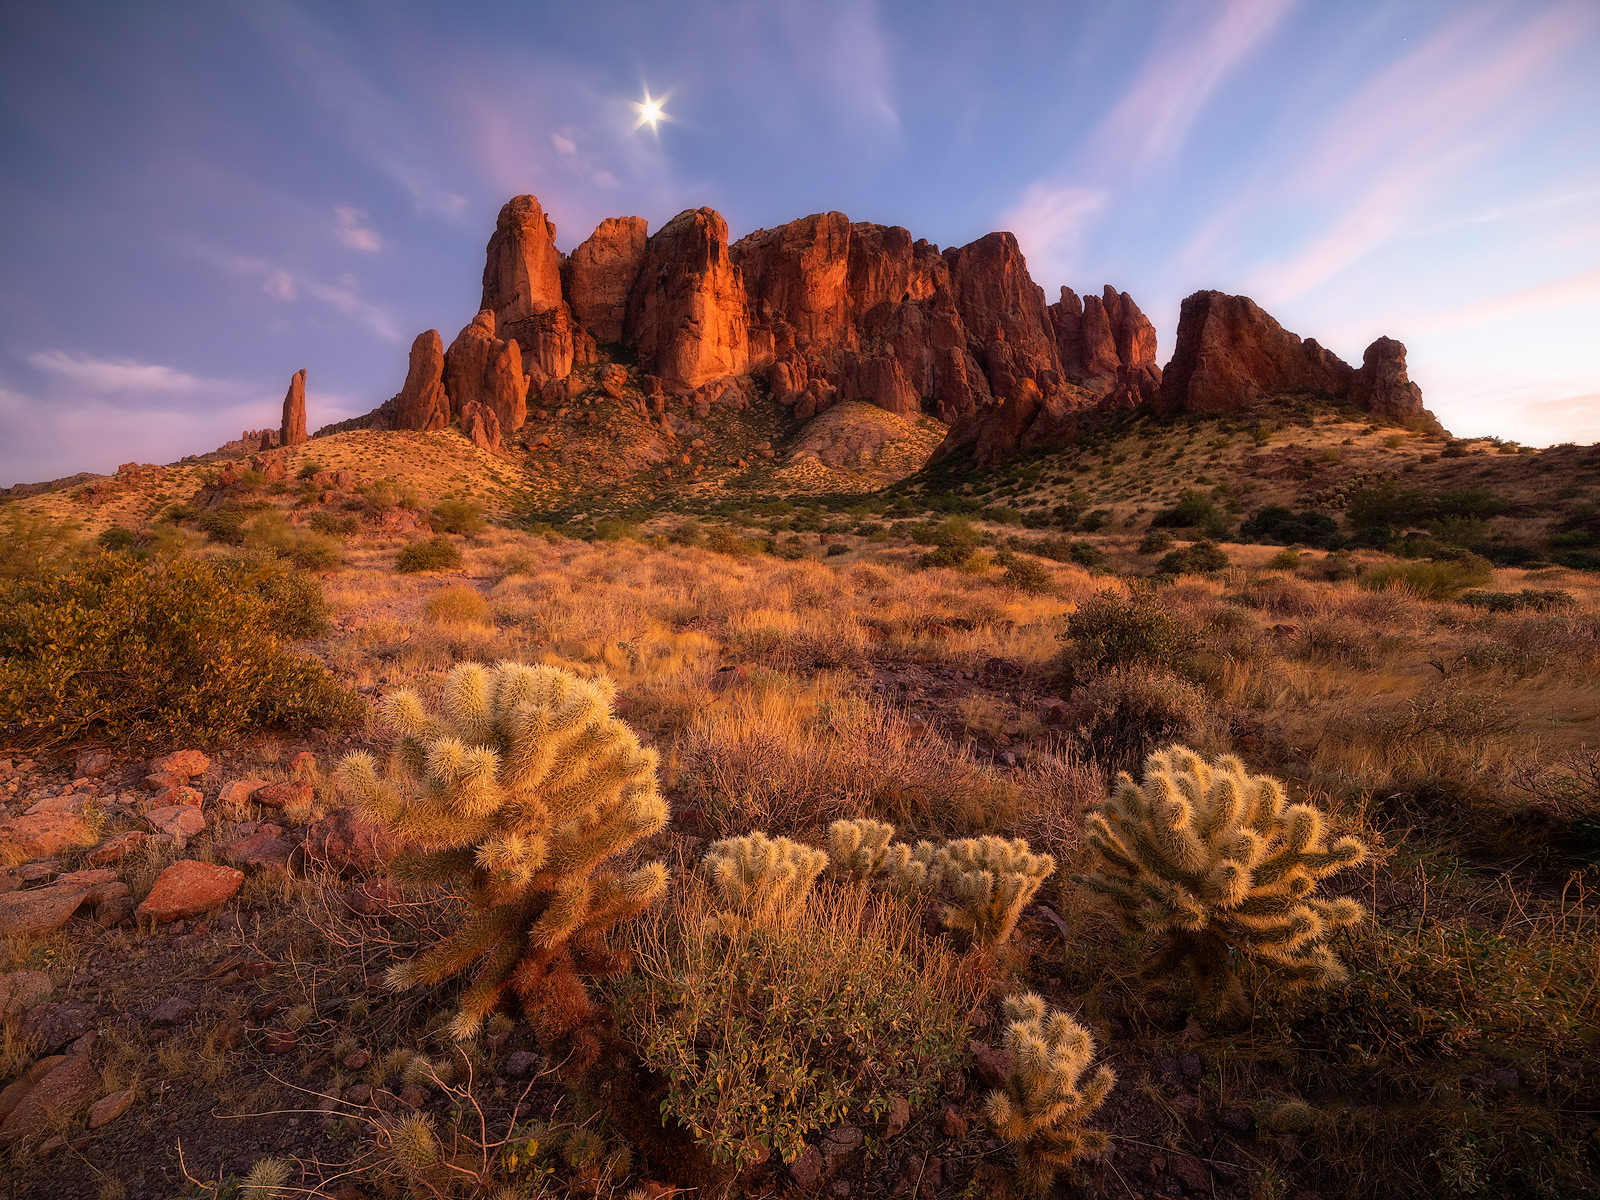 arizona, united states, landscape photography, twilight, superstition mountains, cholla cactus, photo